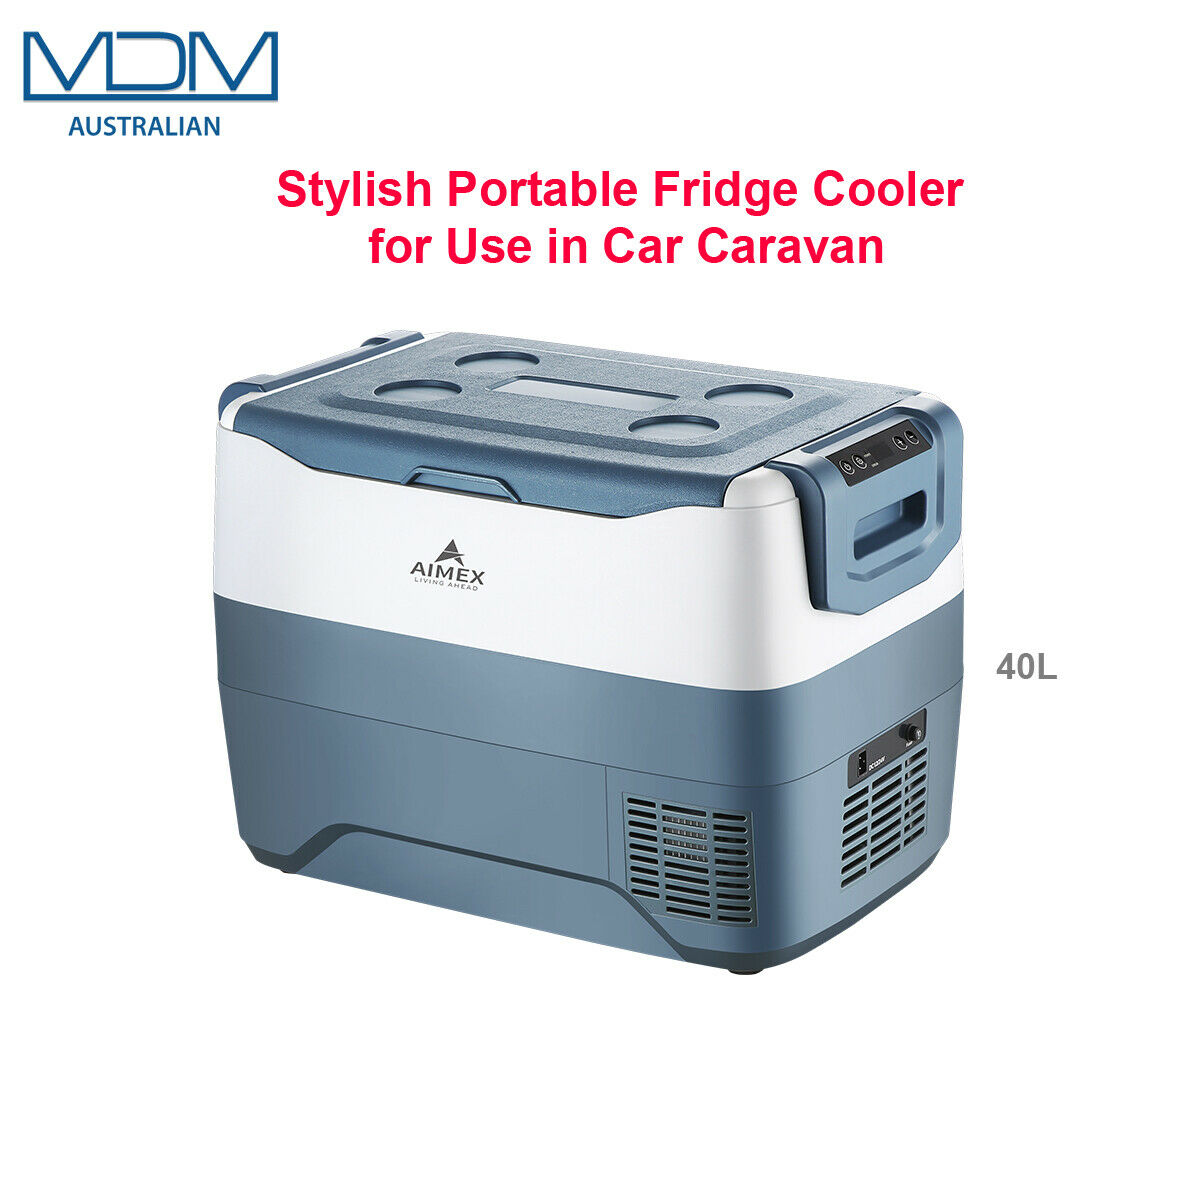 Portable Fridge Cooler For Outing Hiking Camping Use in Car Caravan 40 Ltr Aimex - MDMAustralian